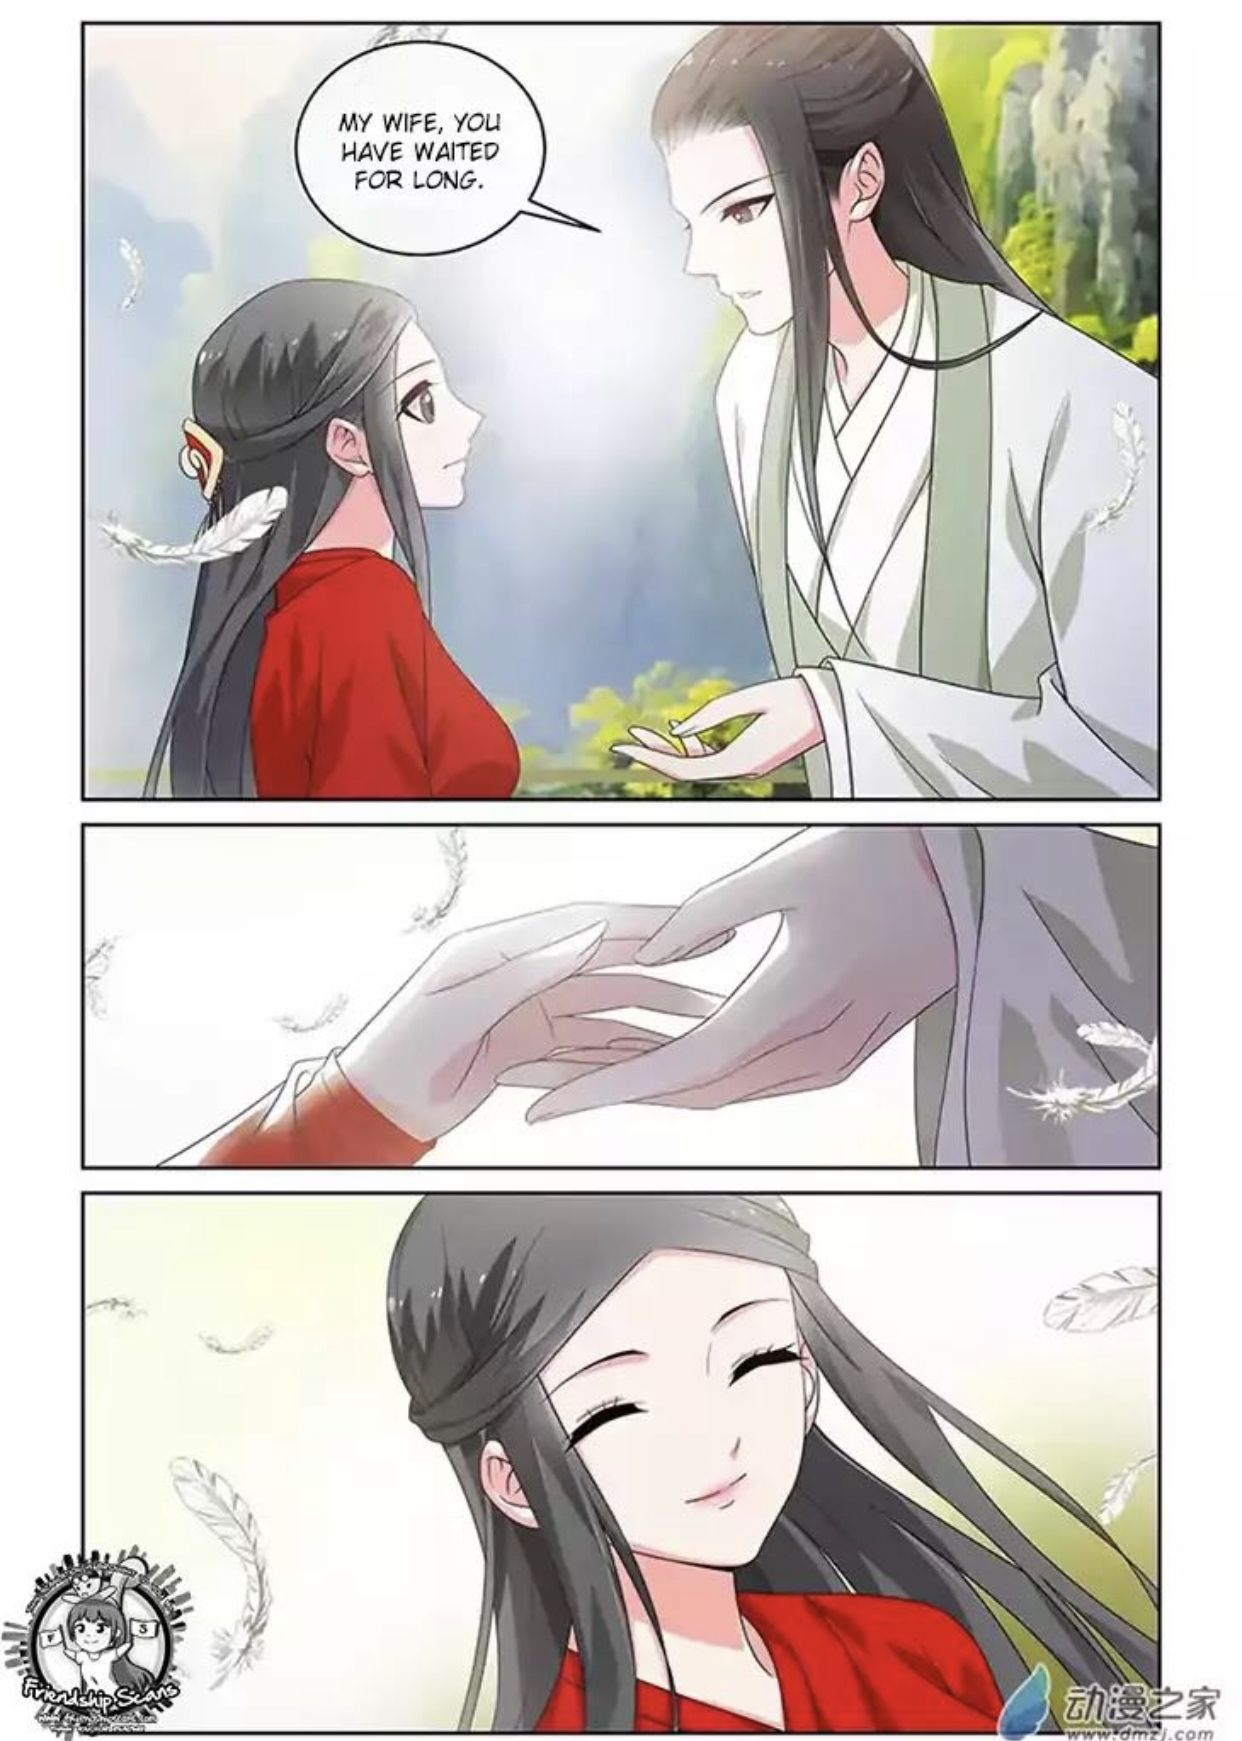 Pin By Animemangaluver On Love O2o Aka Just One Smile Is Very